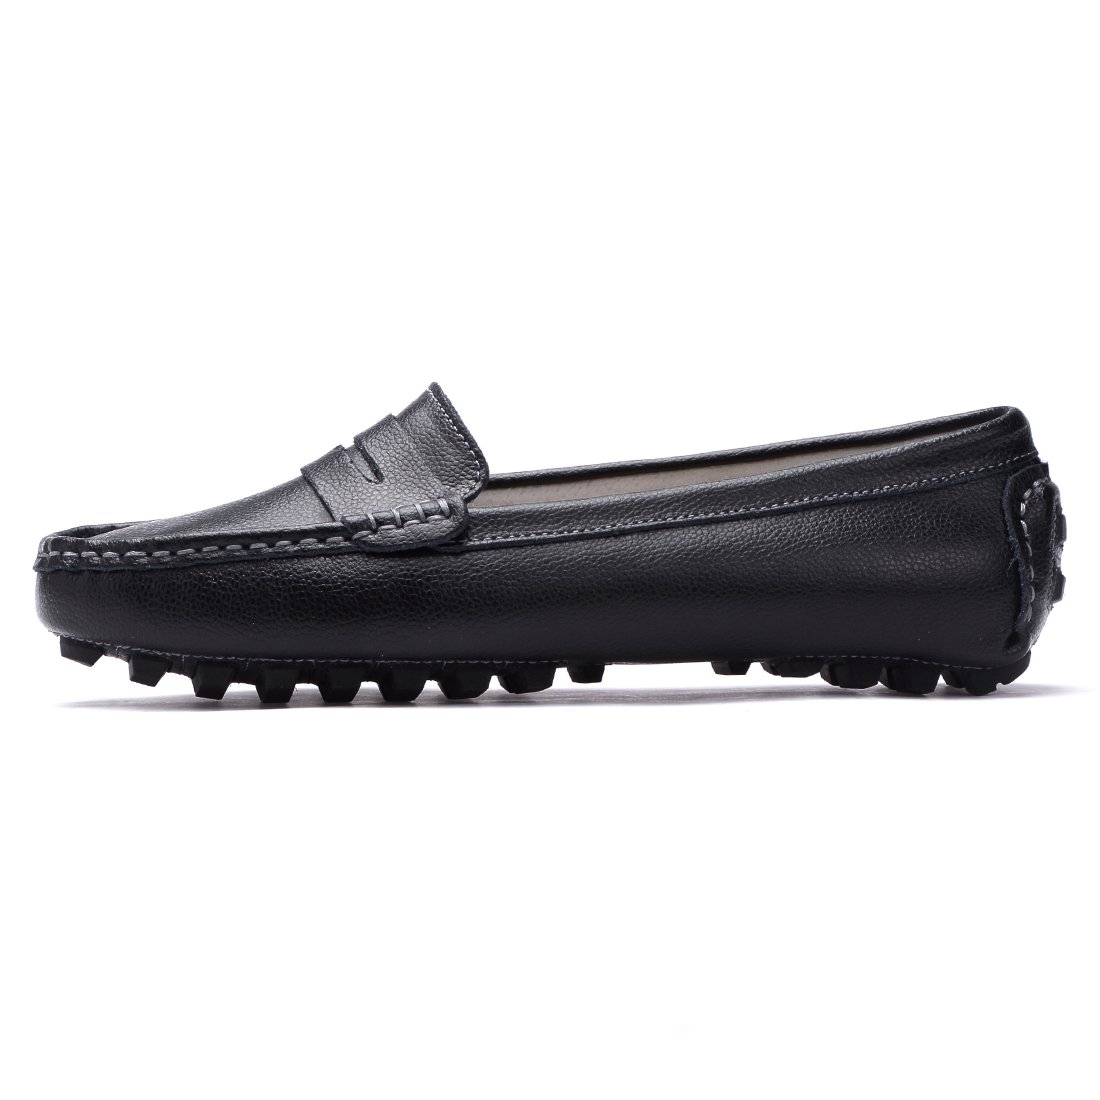 7406067d944 SUNROLAN Casual Womens Genuine Leather Penny Loafers Driving Moccasins  Slip-On Boat Flats Shoes 818